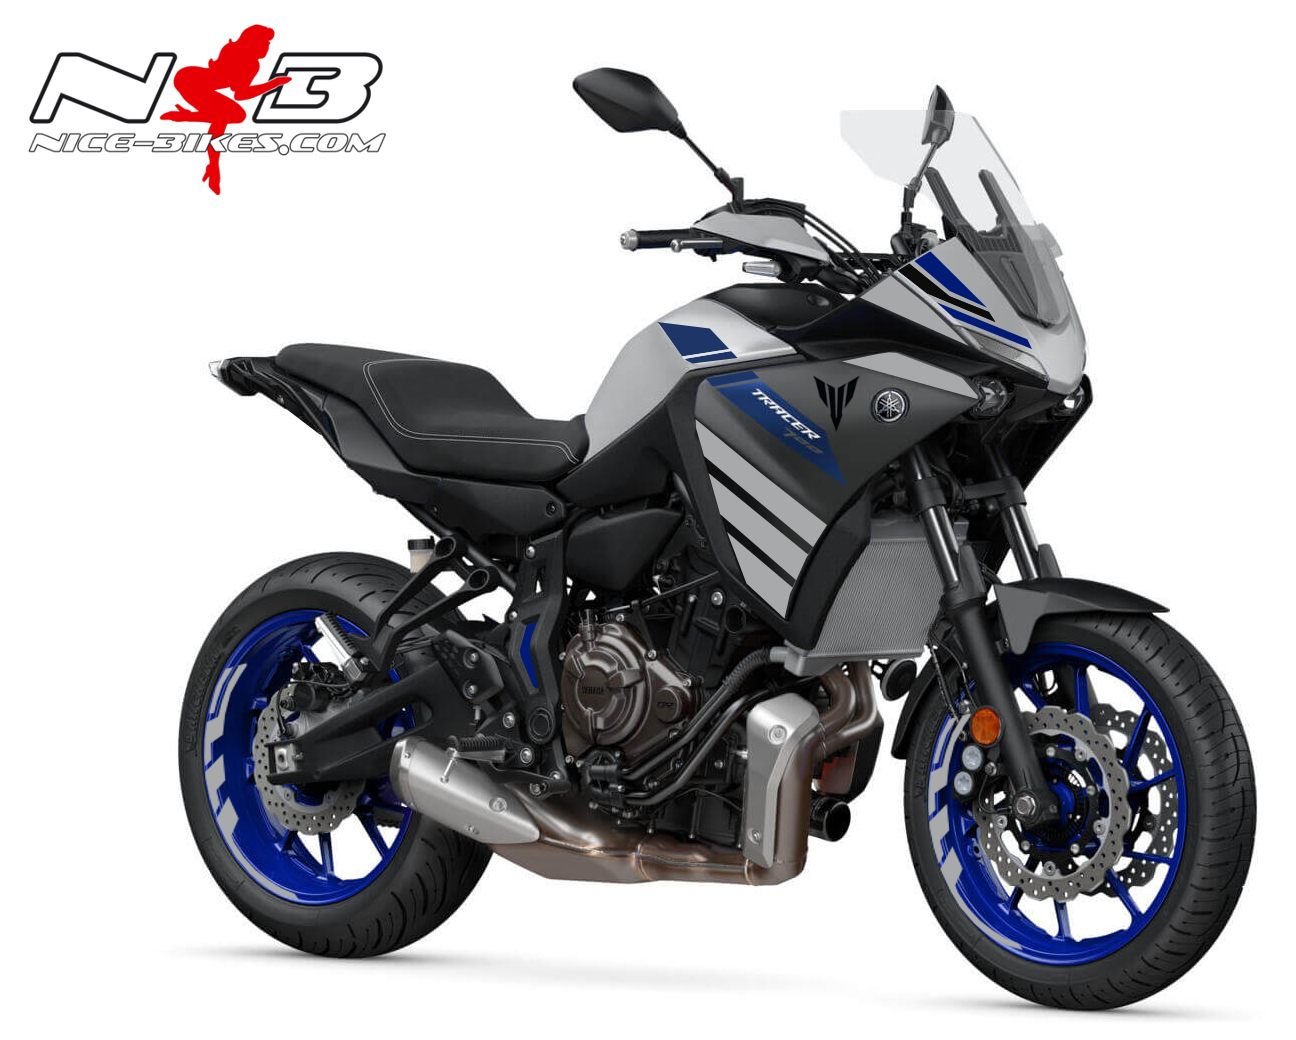 Foliendesign YAMAHA MT07 Tracer Bj. 2020 Racing Grey